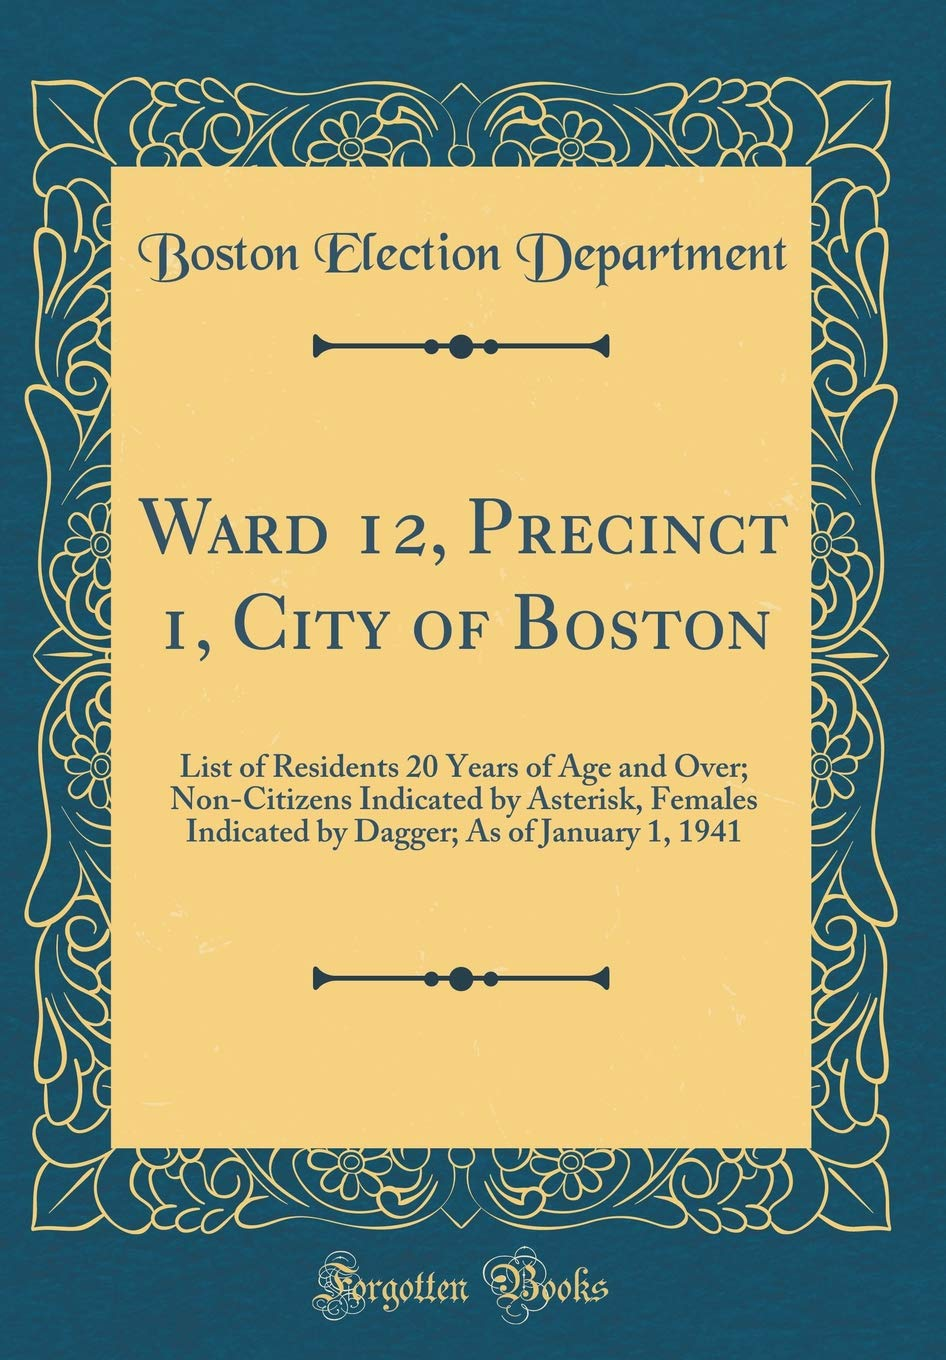 Ward 12, Precinct 1, City of Boston: List of Residents 20 Years of Age and Over; Non-Citizens Indicated by Asterisk, Females Indicated by Dagger; As of January 1, 1941 (Classic Reprint) ebook